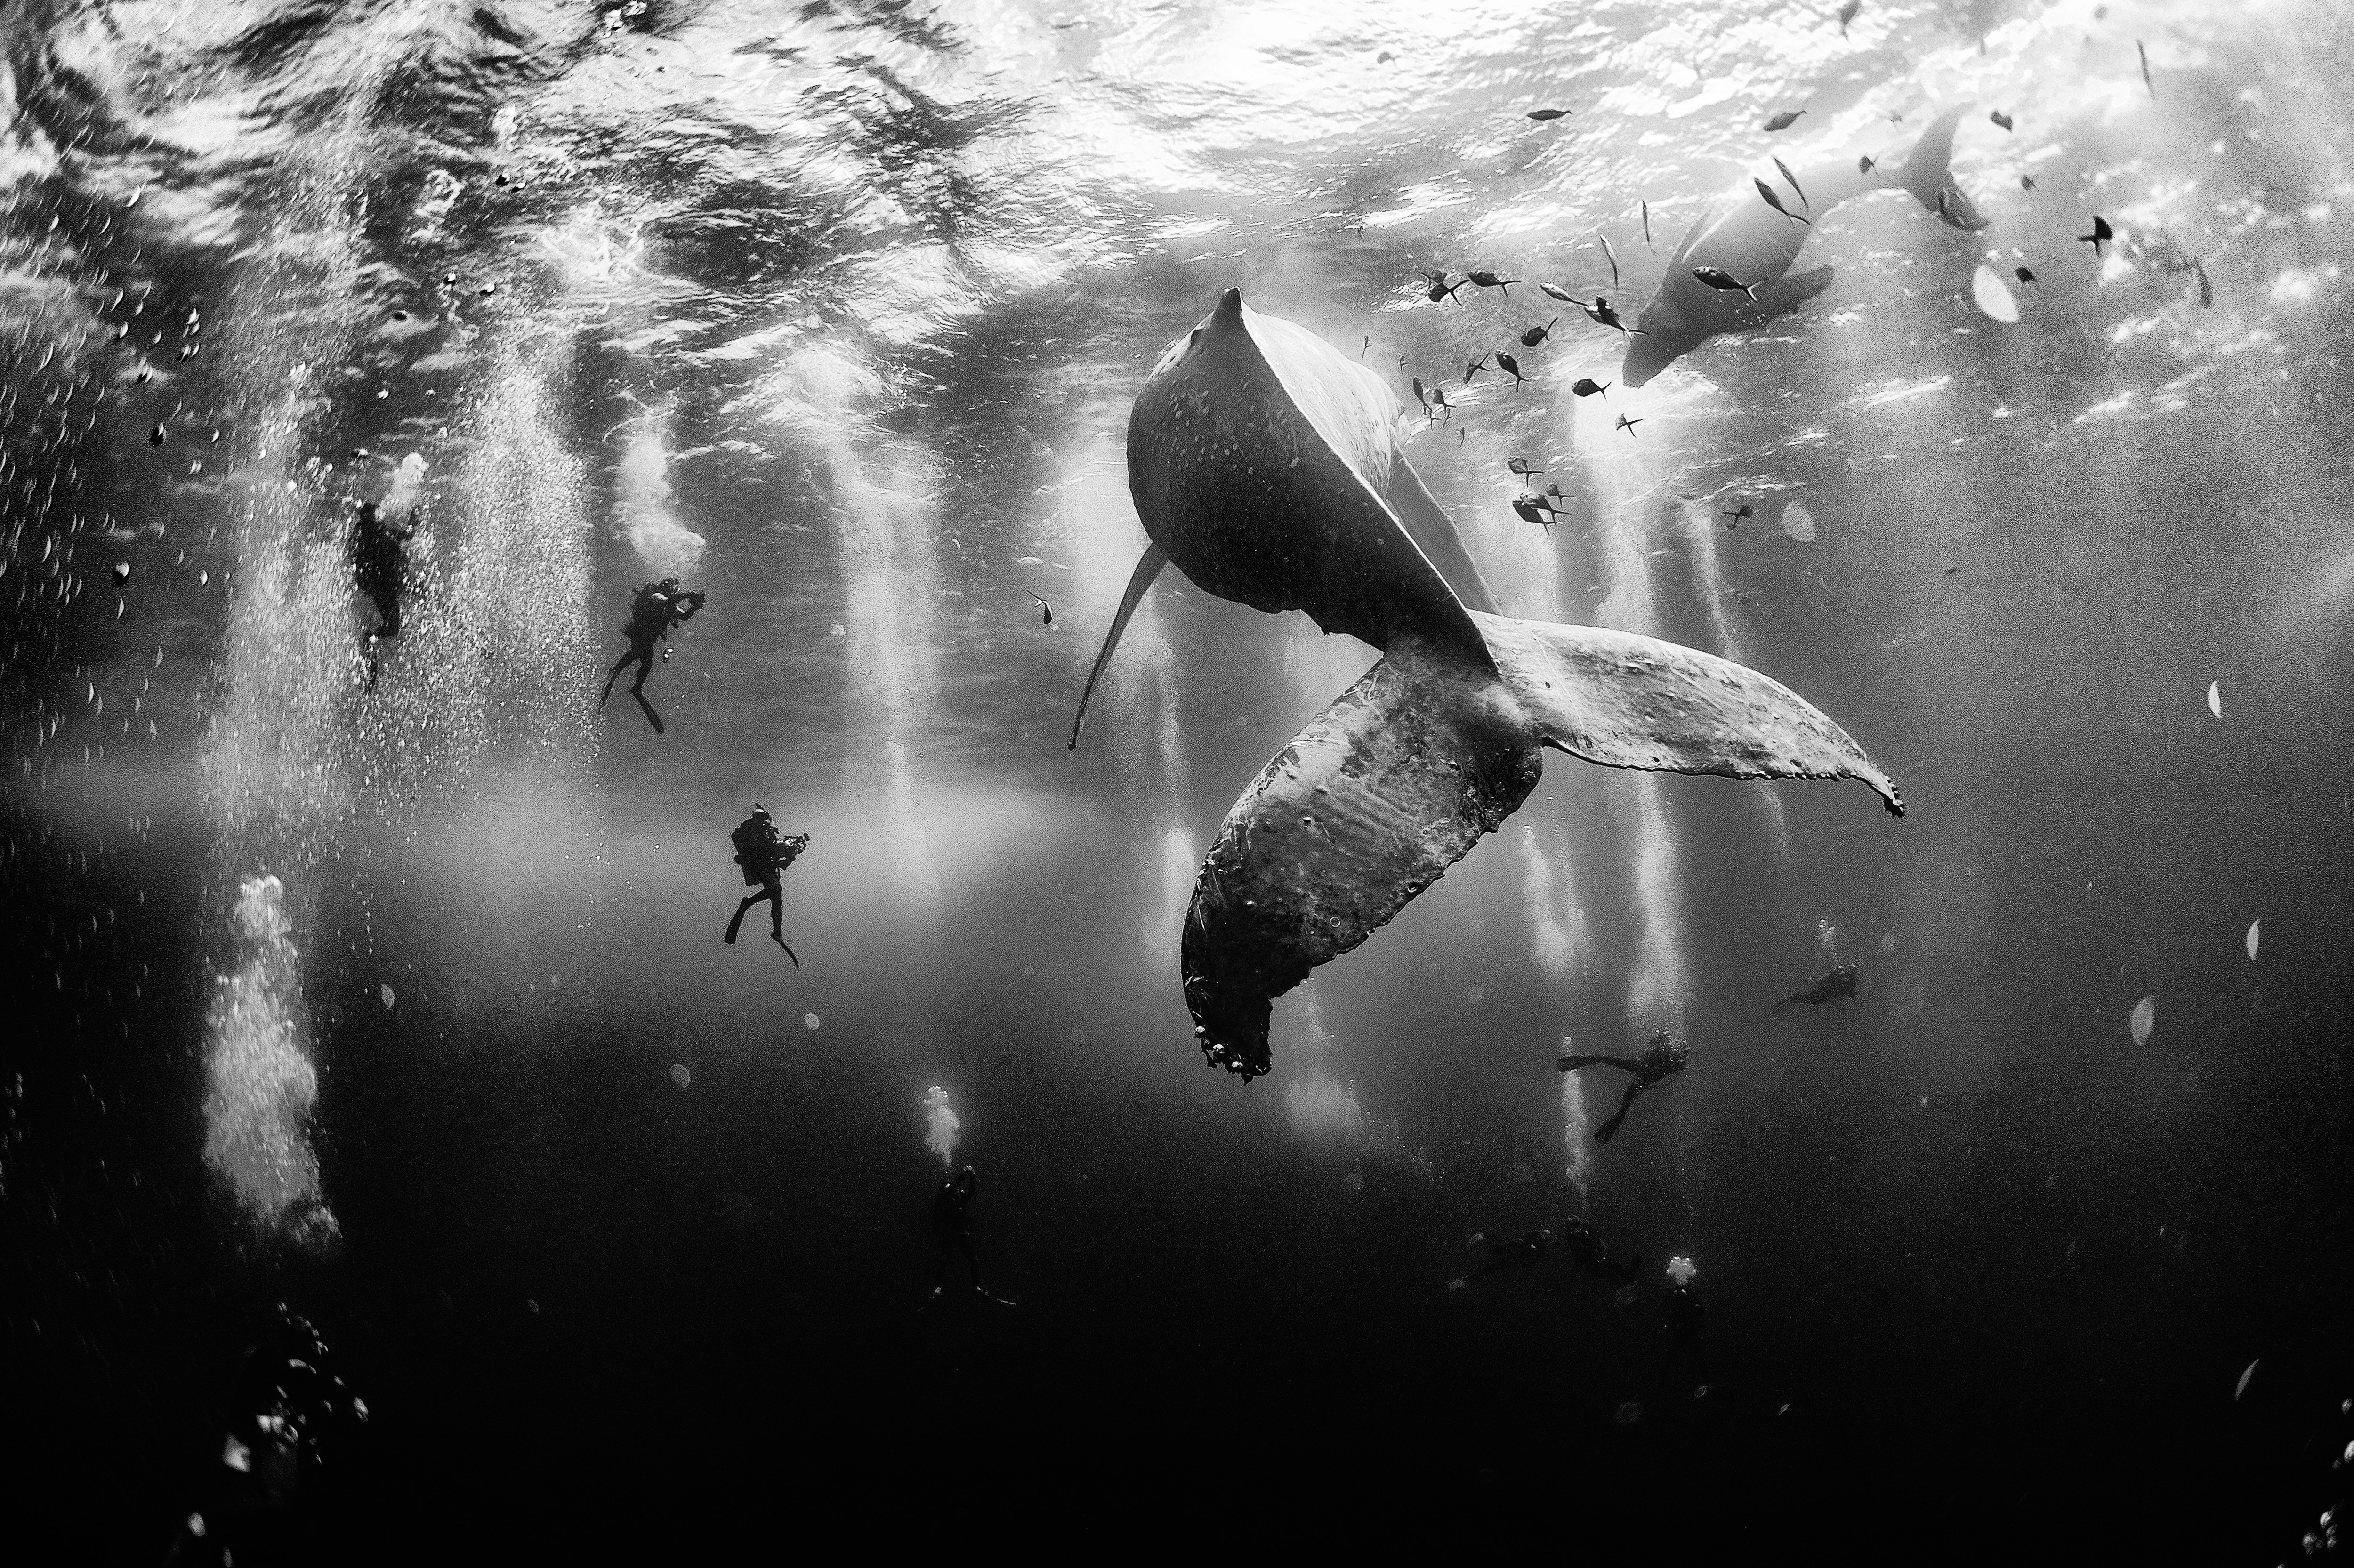 General 5000x3331 nature whale sea photographer National Geographic underwater divers monochrome bubbles fish